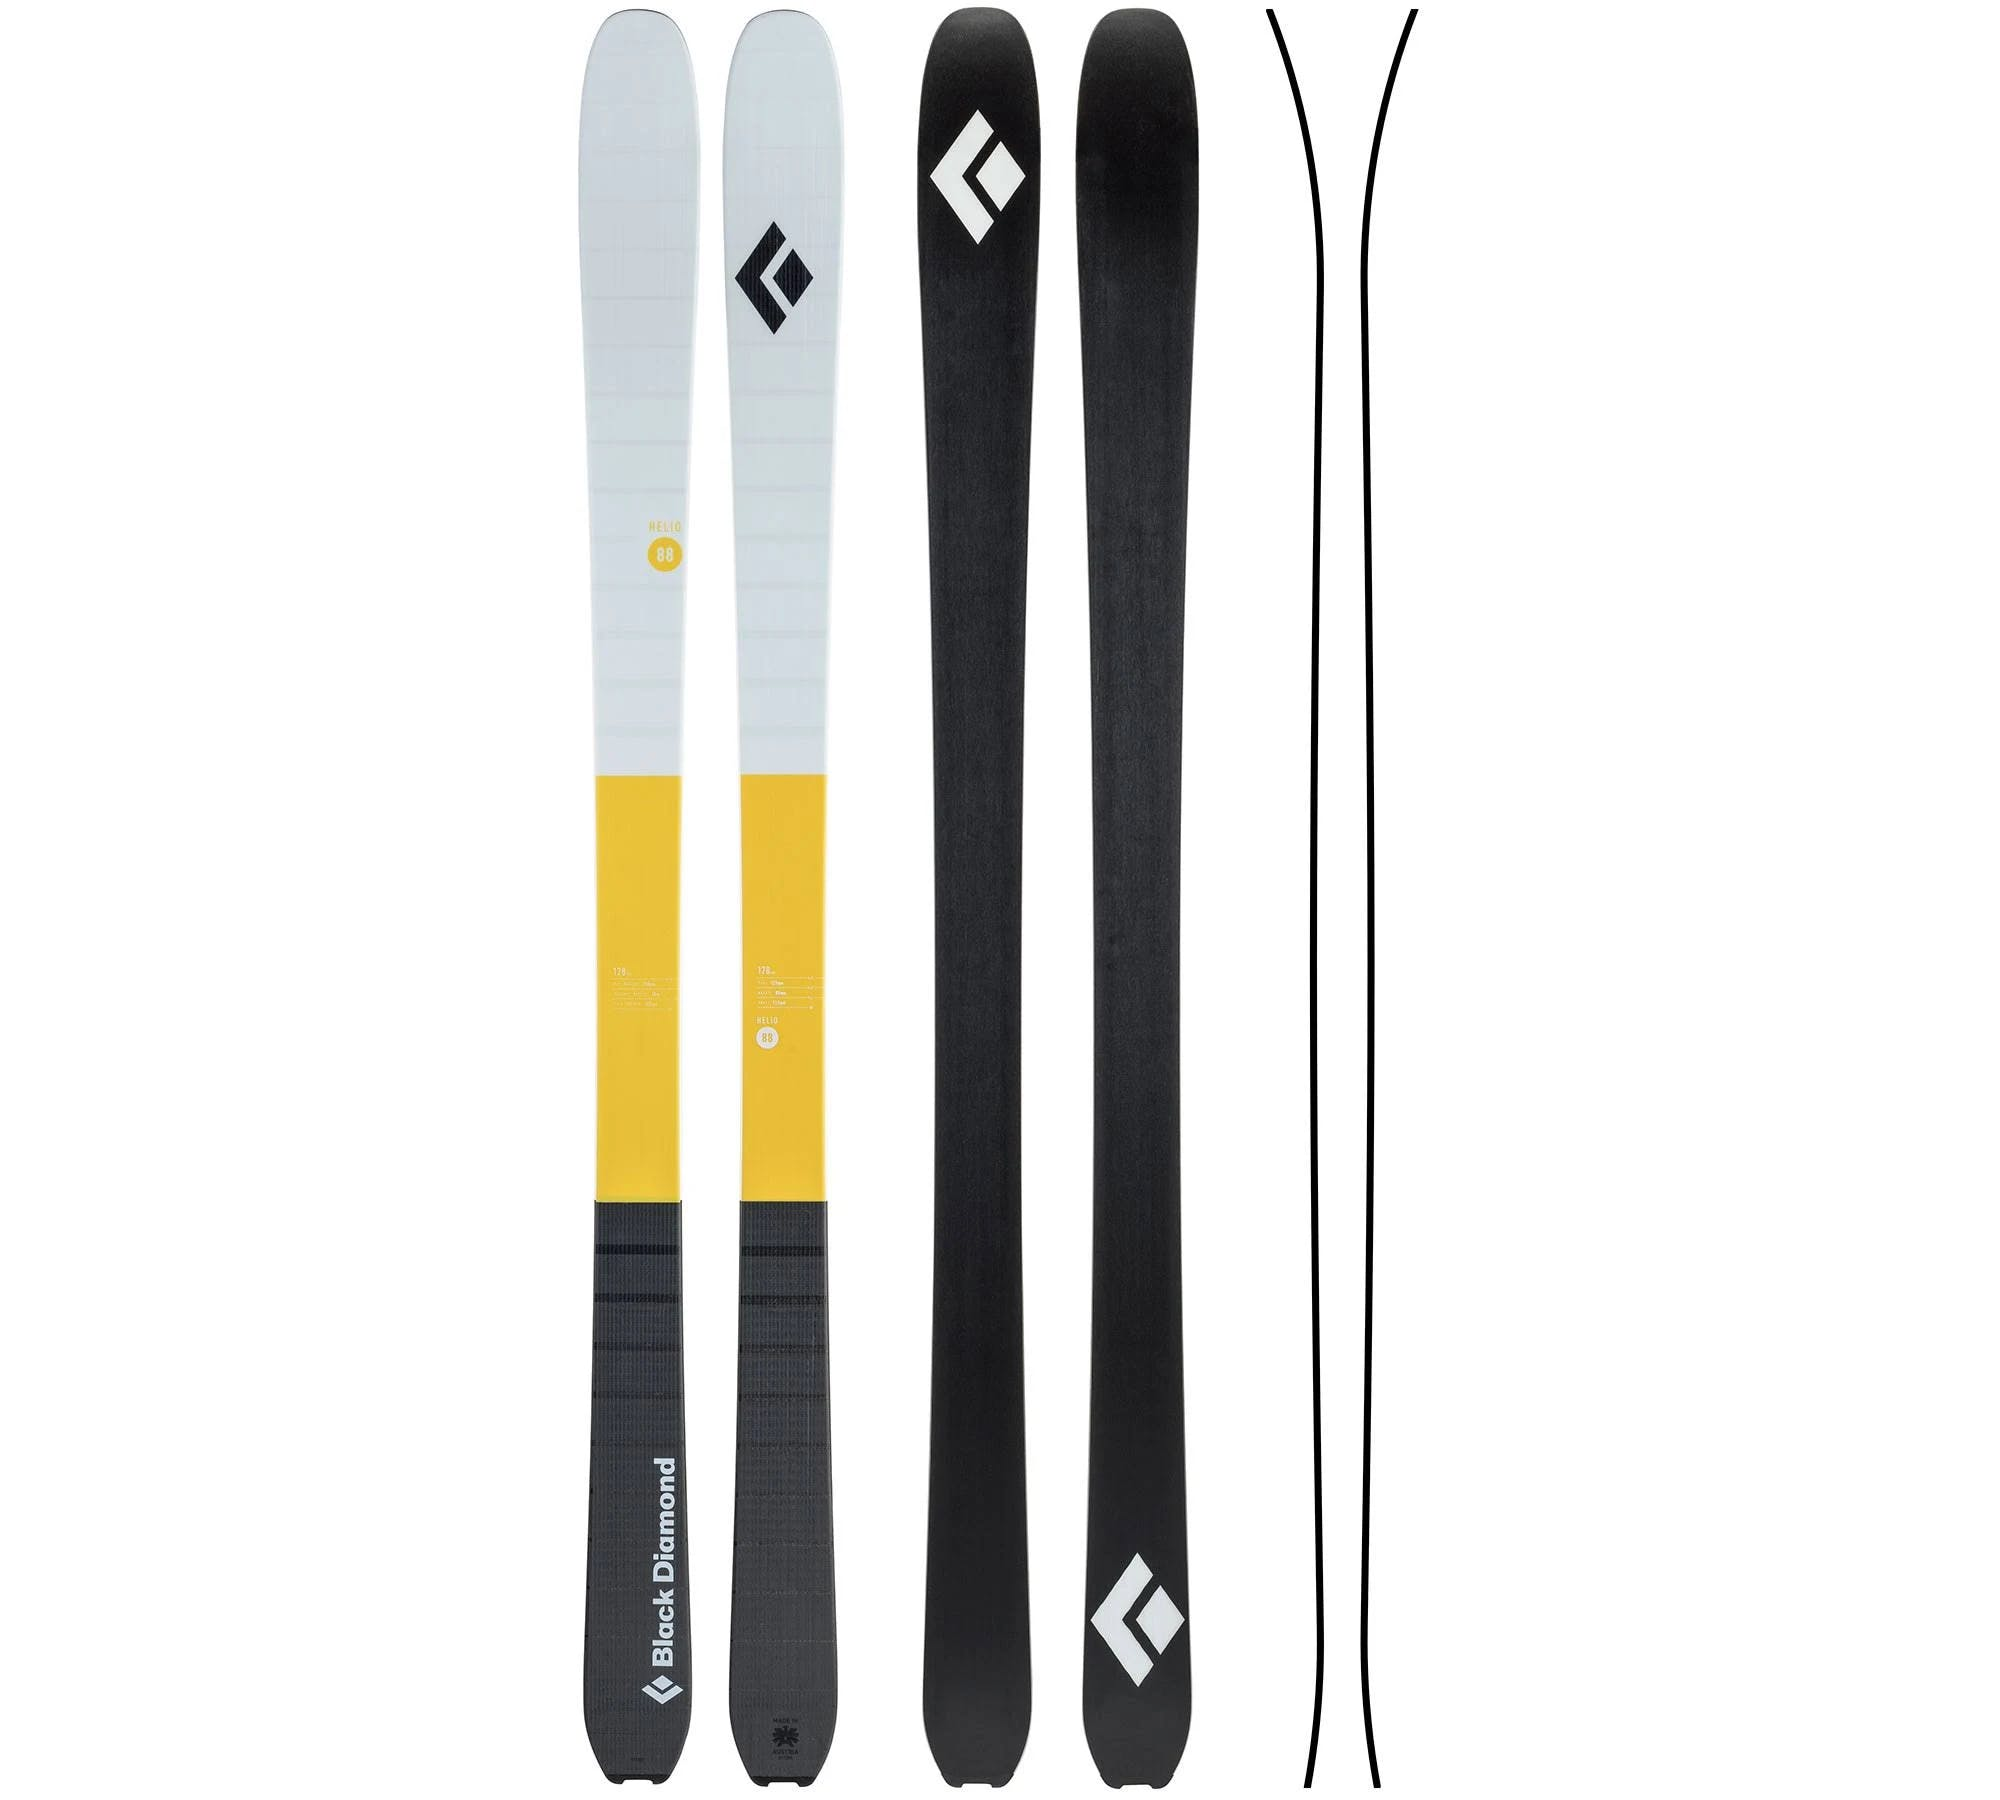 Black Diamond Helio 88 Skis